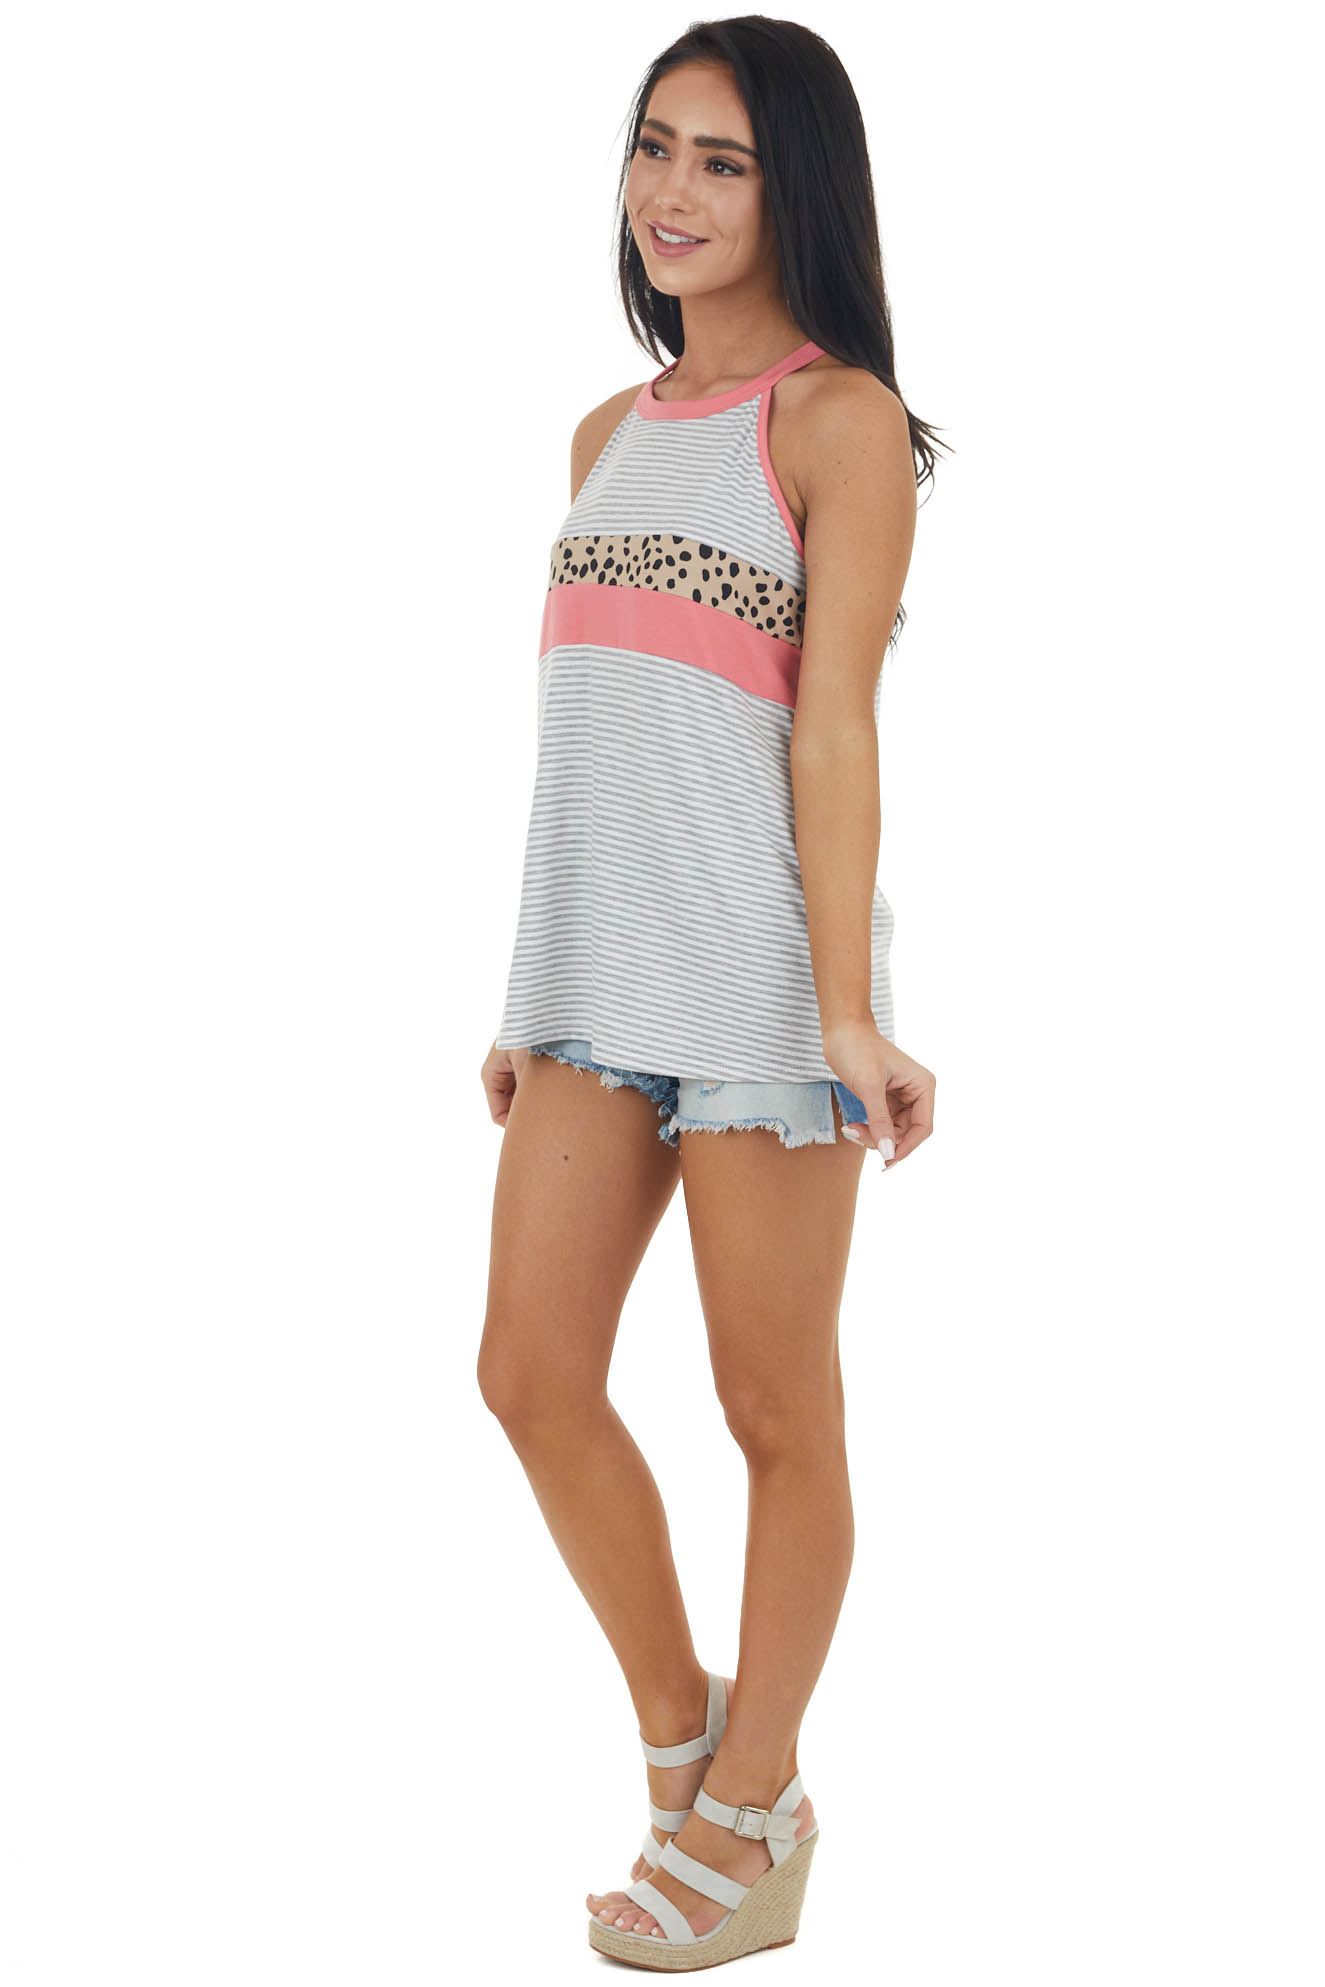 Pearl and Steel Striped Halter Top with Cheetah Colorblock